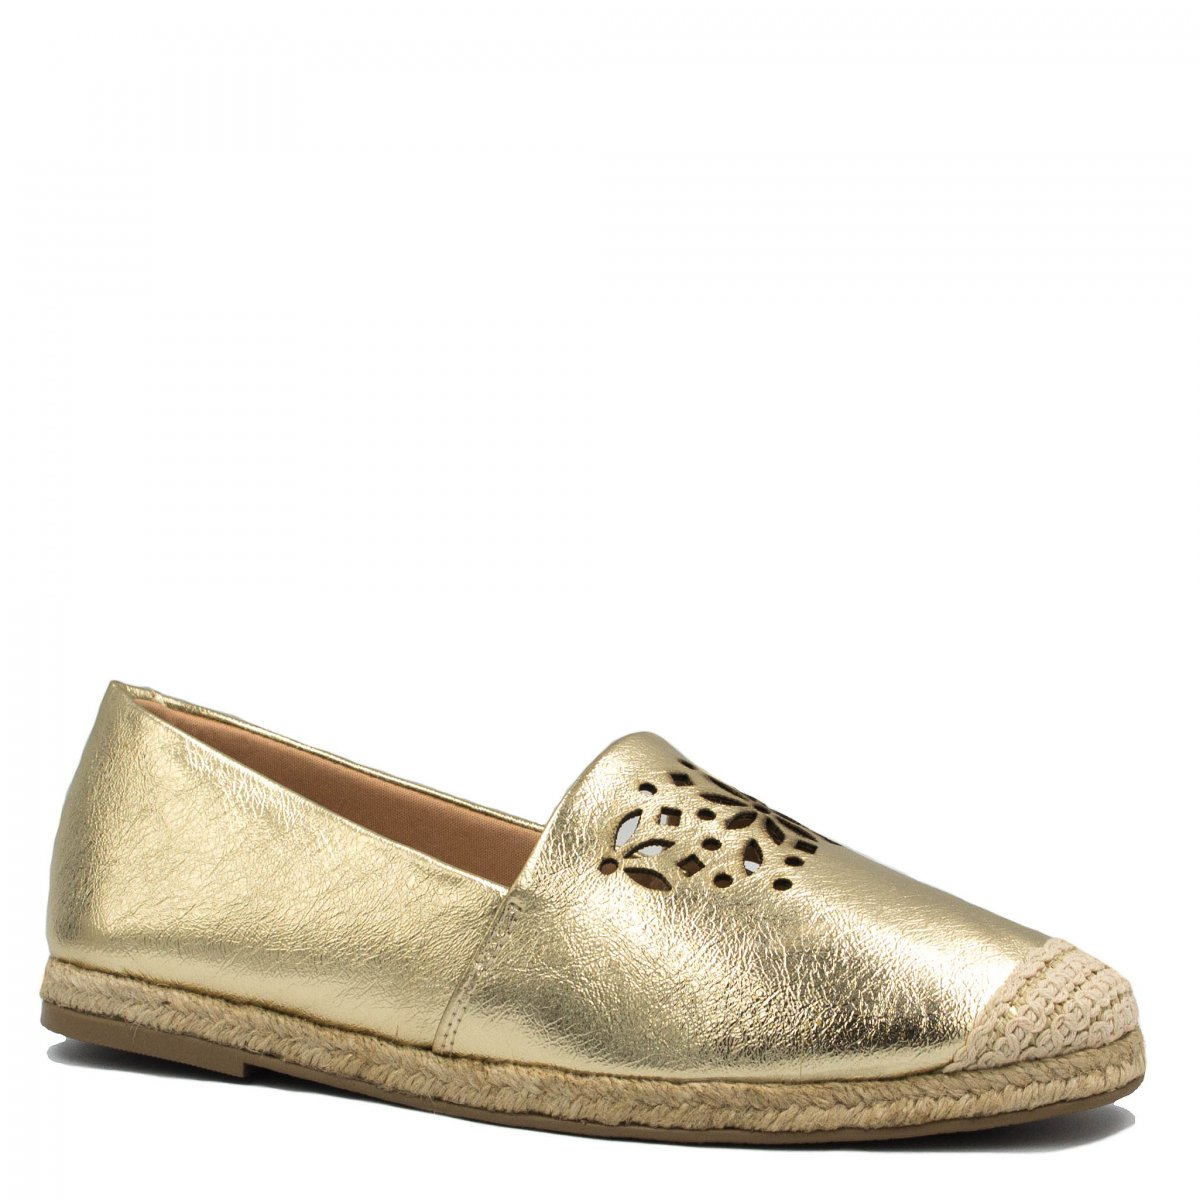 Alpargata Zariff Shoes Metalizada Corda Dourado